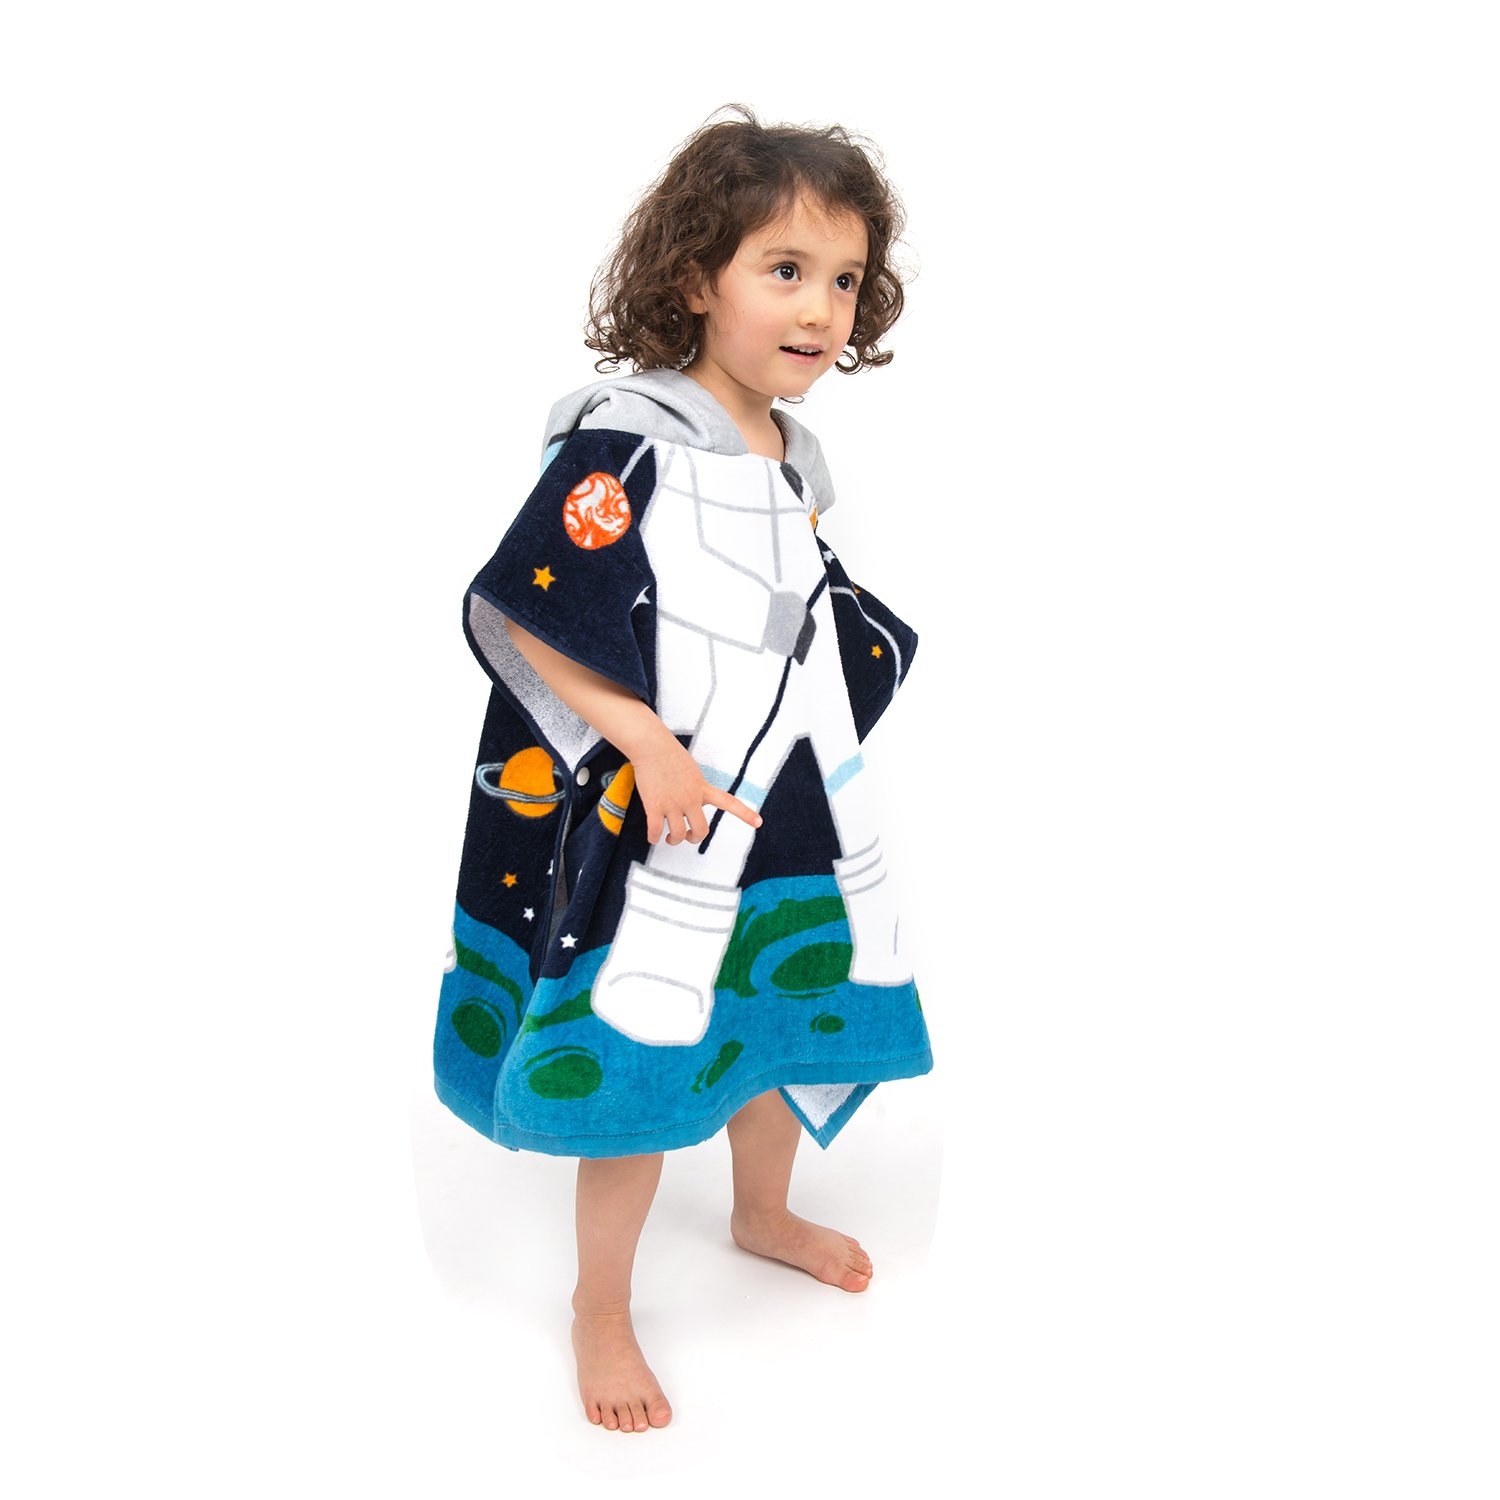 ZINGLIFT Kids Hooded Towel Poncho for Age 2-7 Years Old Cotton Beach Pool Shower Swim Bath Towel for Boys Girls Toddlers Children Size 24''x 47'' (Astronaut Dream)